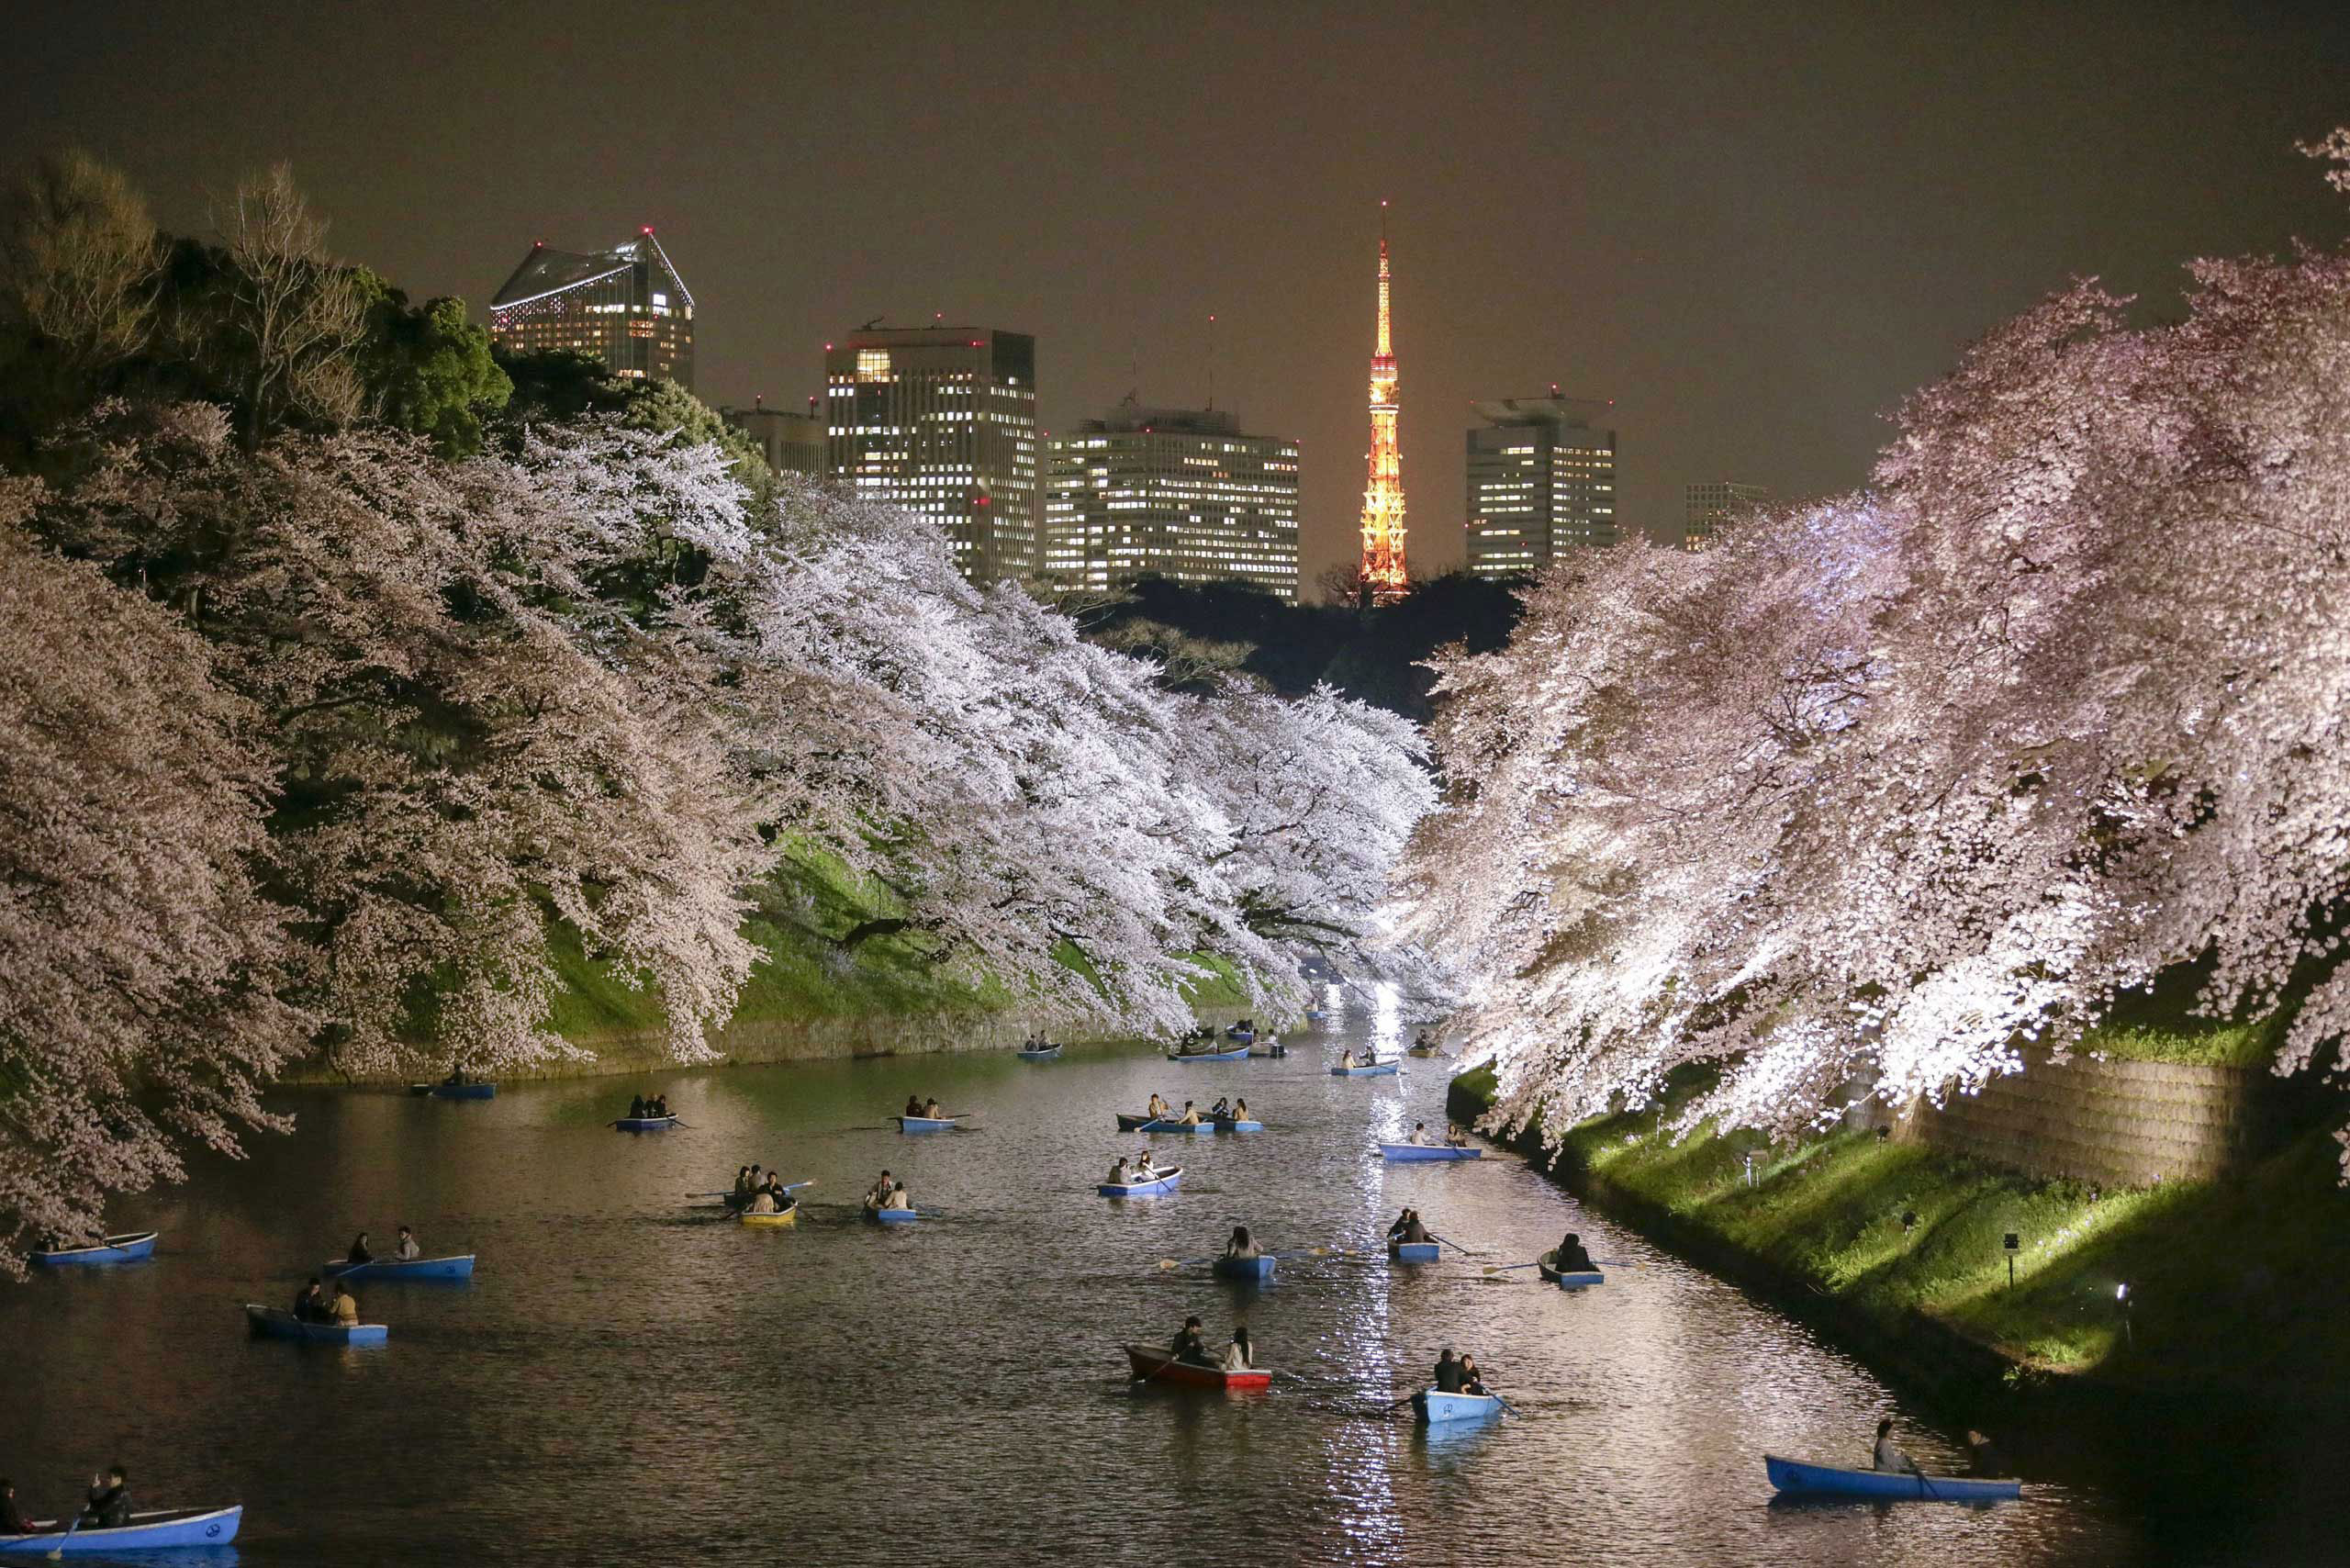 People rowing boats enjoy night view of cherry blossoms in full bloom on Chidorigafuchi moat in Tokyo, Japan. March 30, 2015.